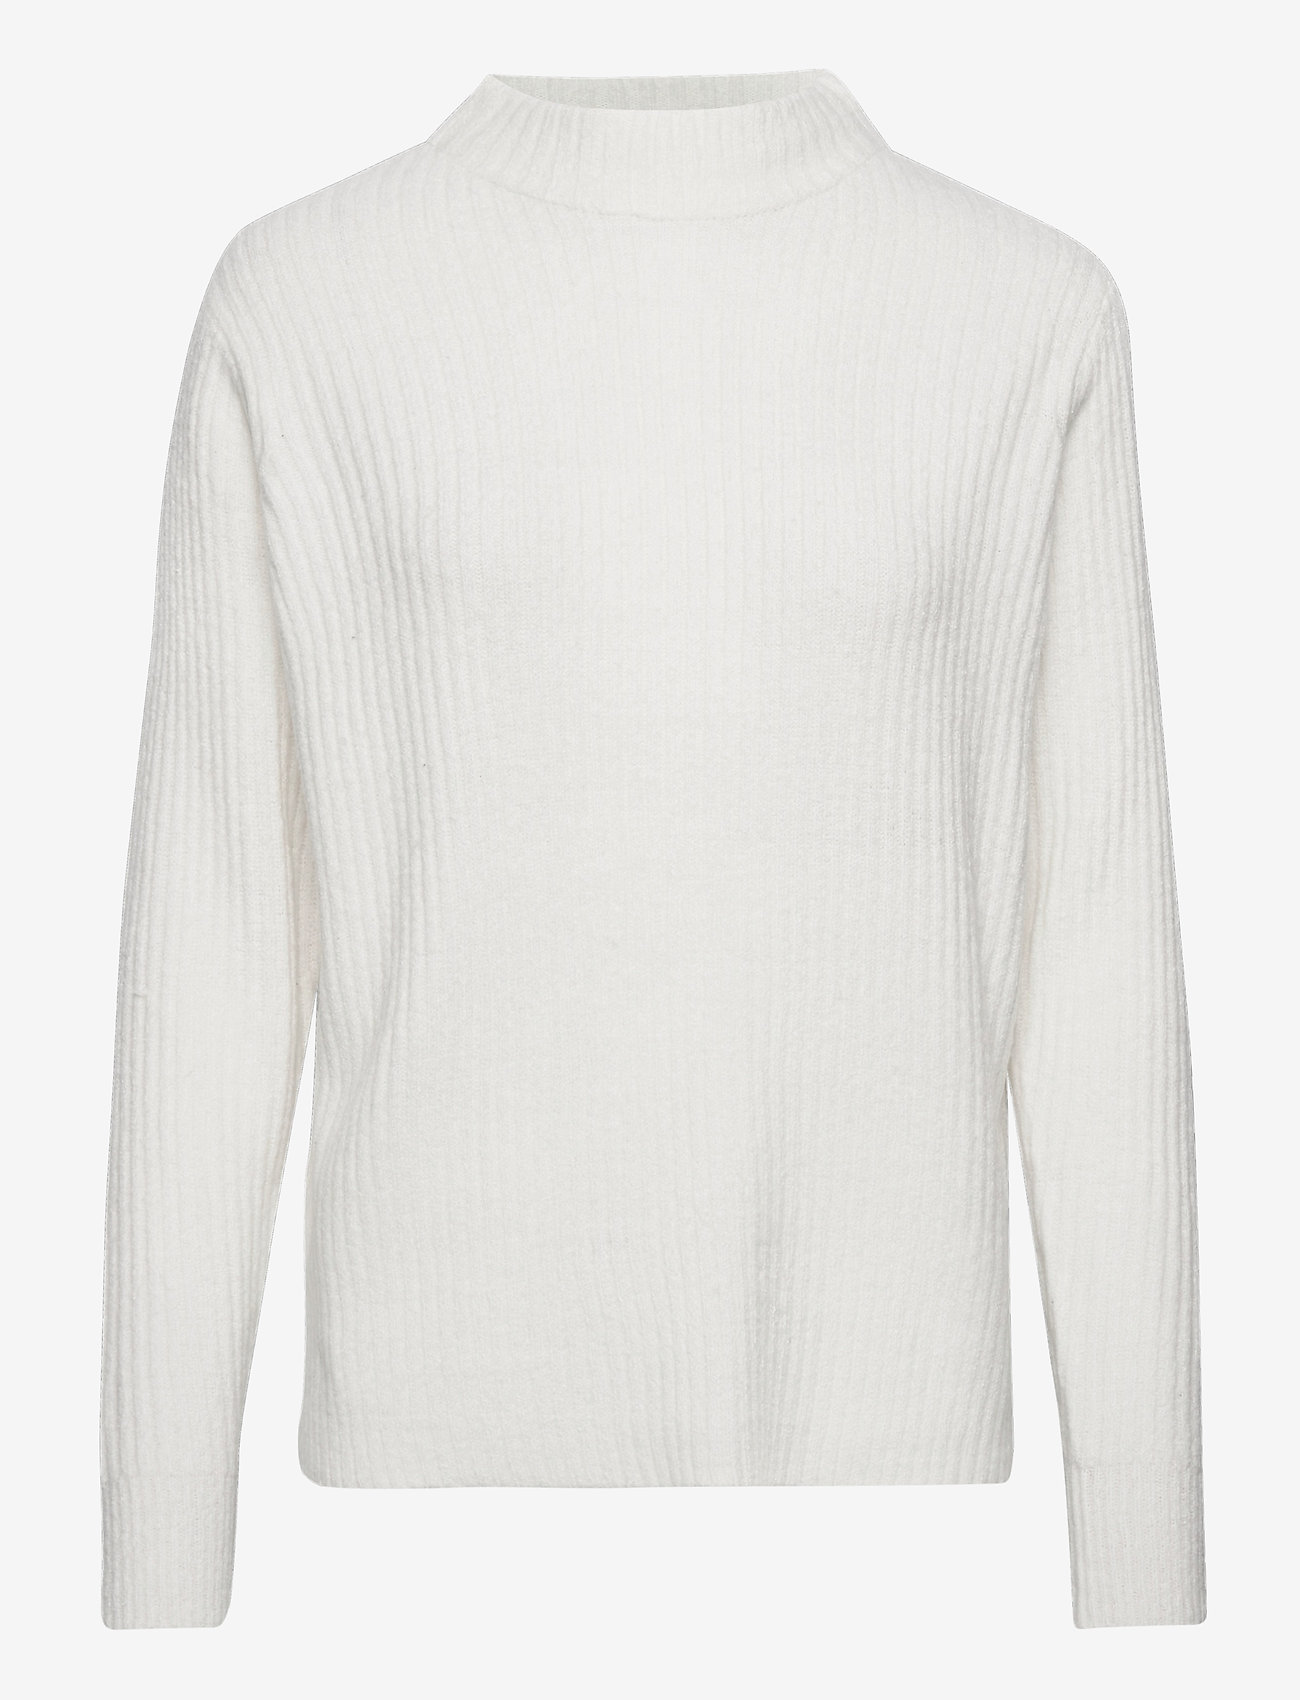 b.young - BYNORA JUMPER 2 - - tröjor - off white - 0